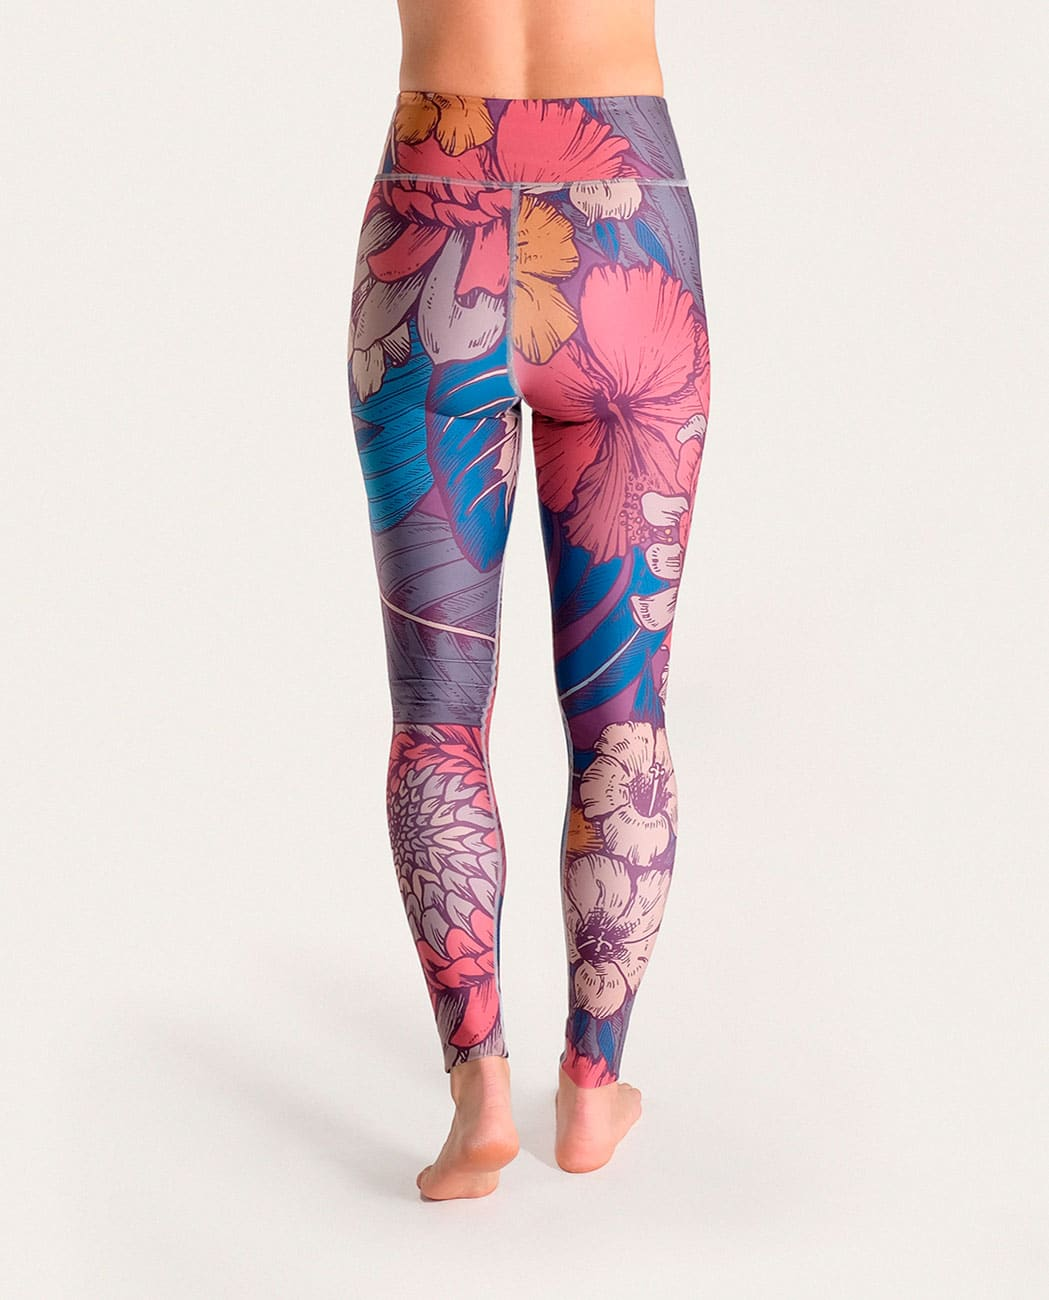 Blossom Yoga Leggings Komoshi Back